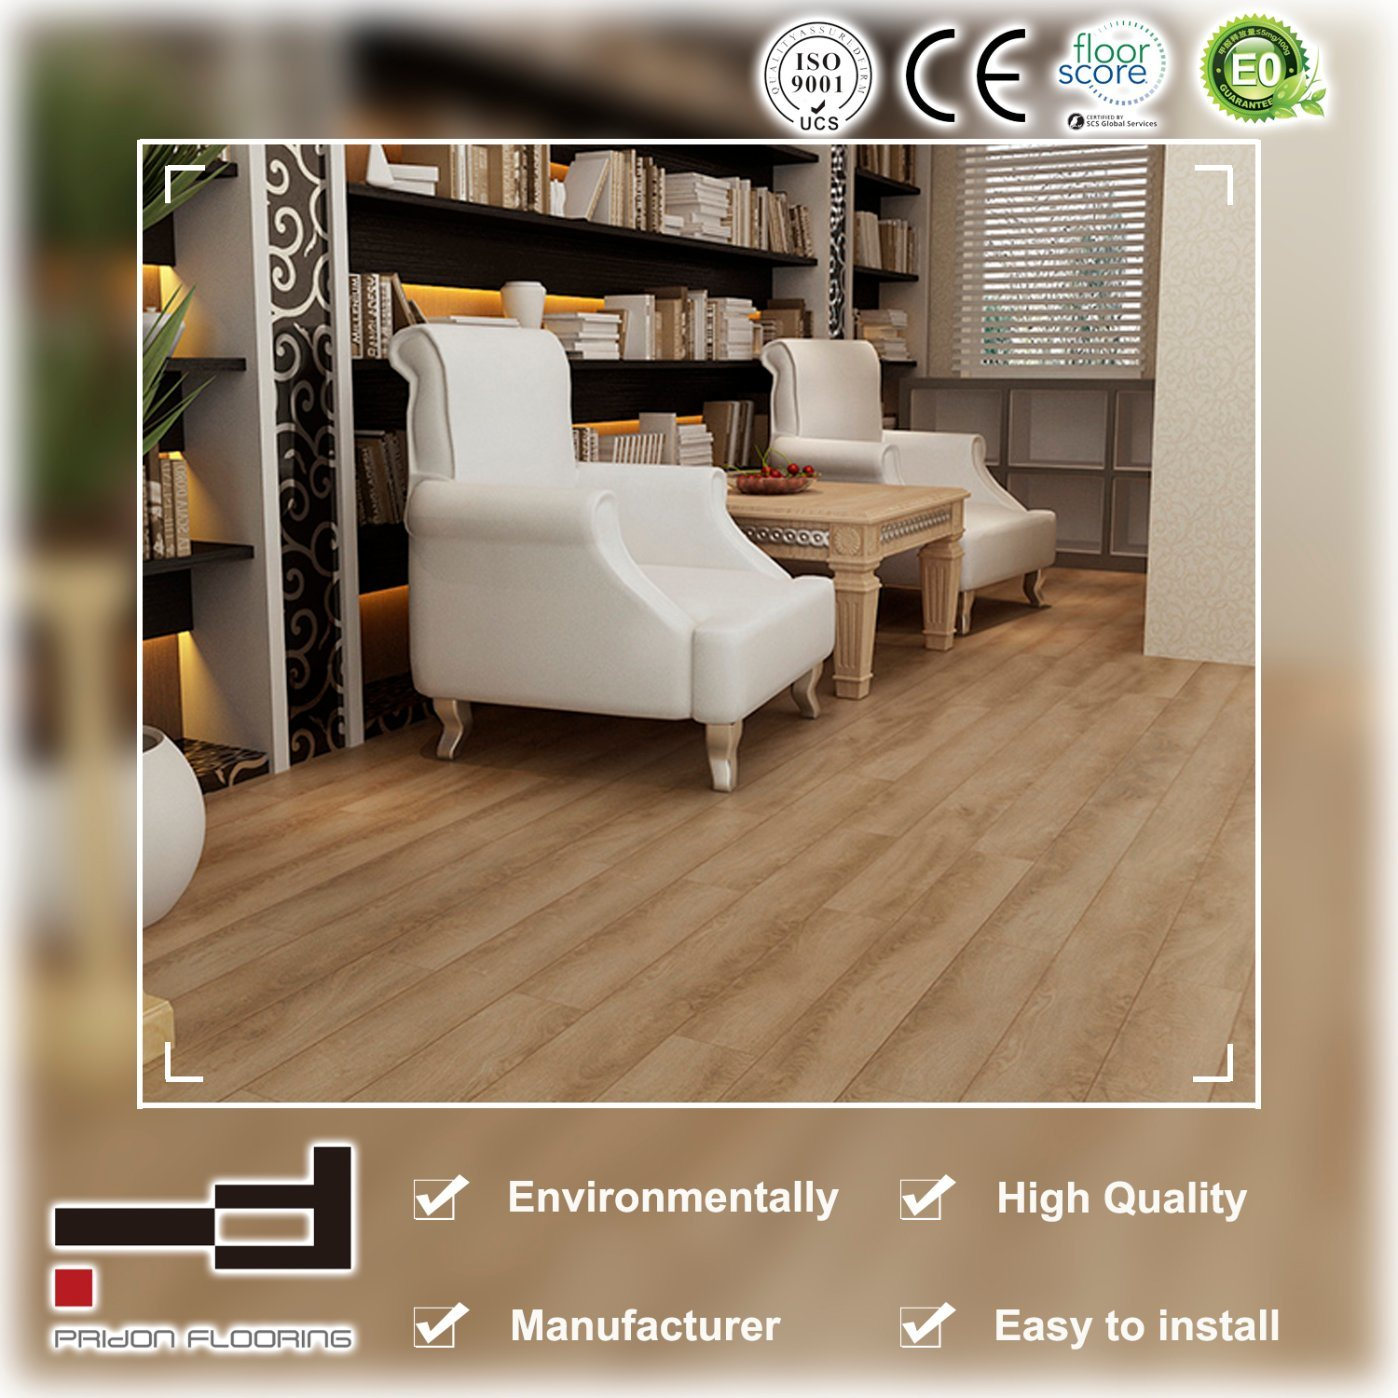 8mm 12mm Eir Light Yellow Oak High Quality Drop Lock Laminate Flooring